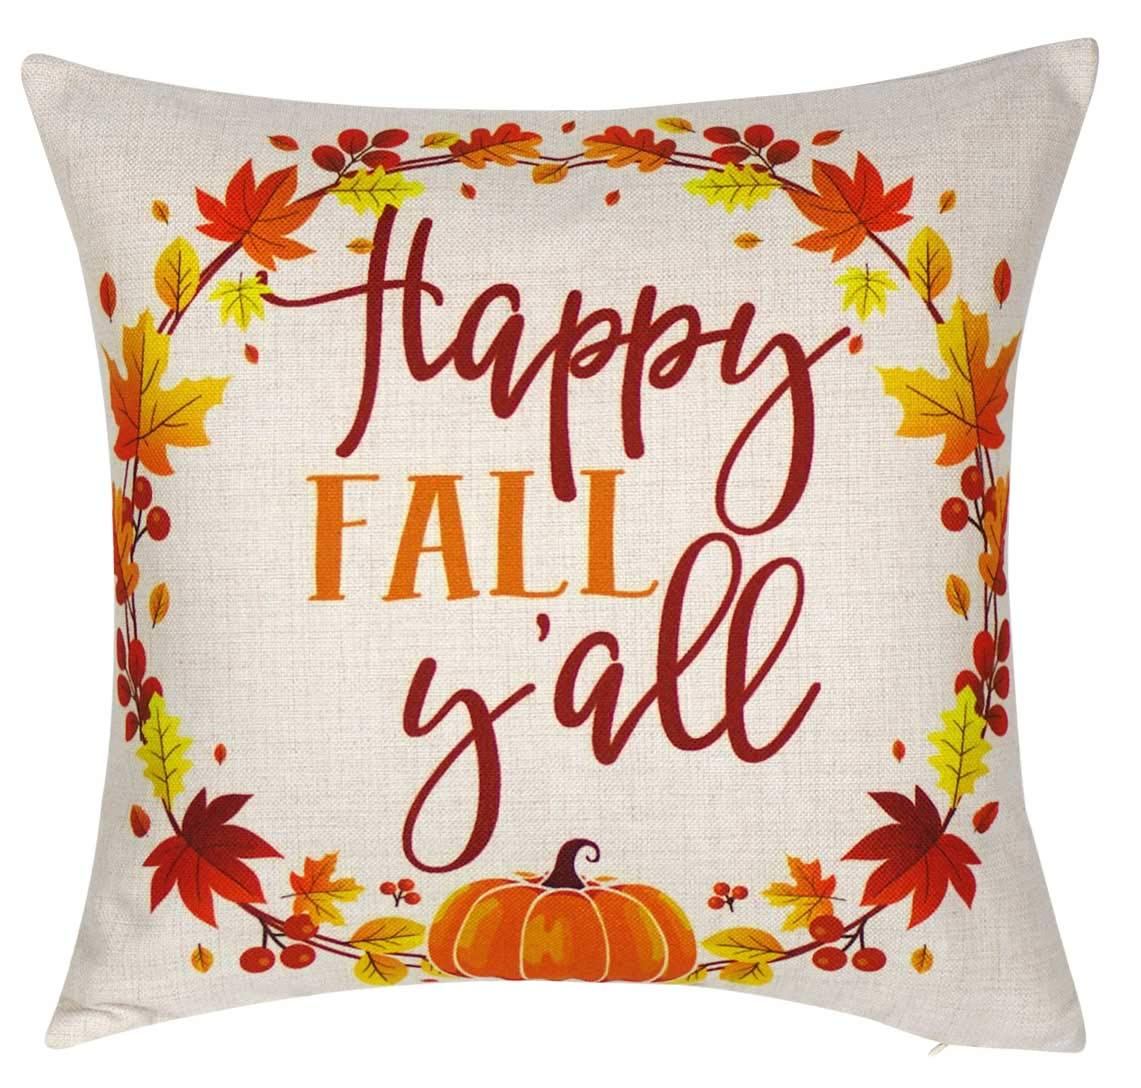 DECOPOW Happy Fall Yall Throw Pillow Cover Decorative Throw Pillow Cover 18 X18